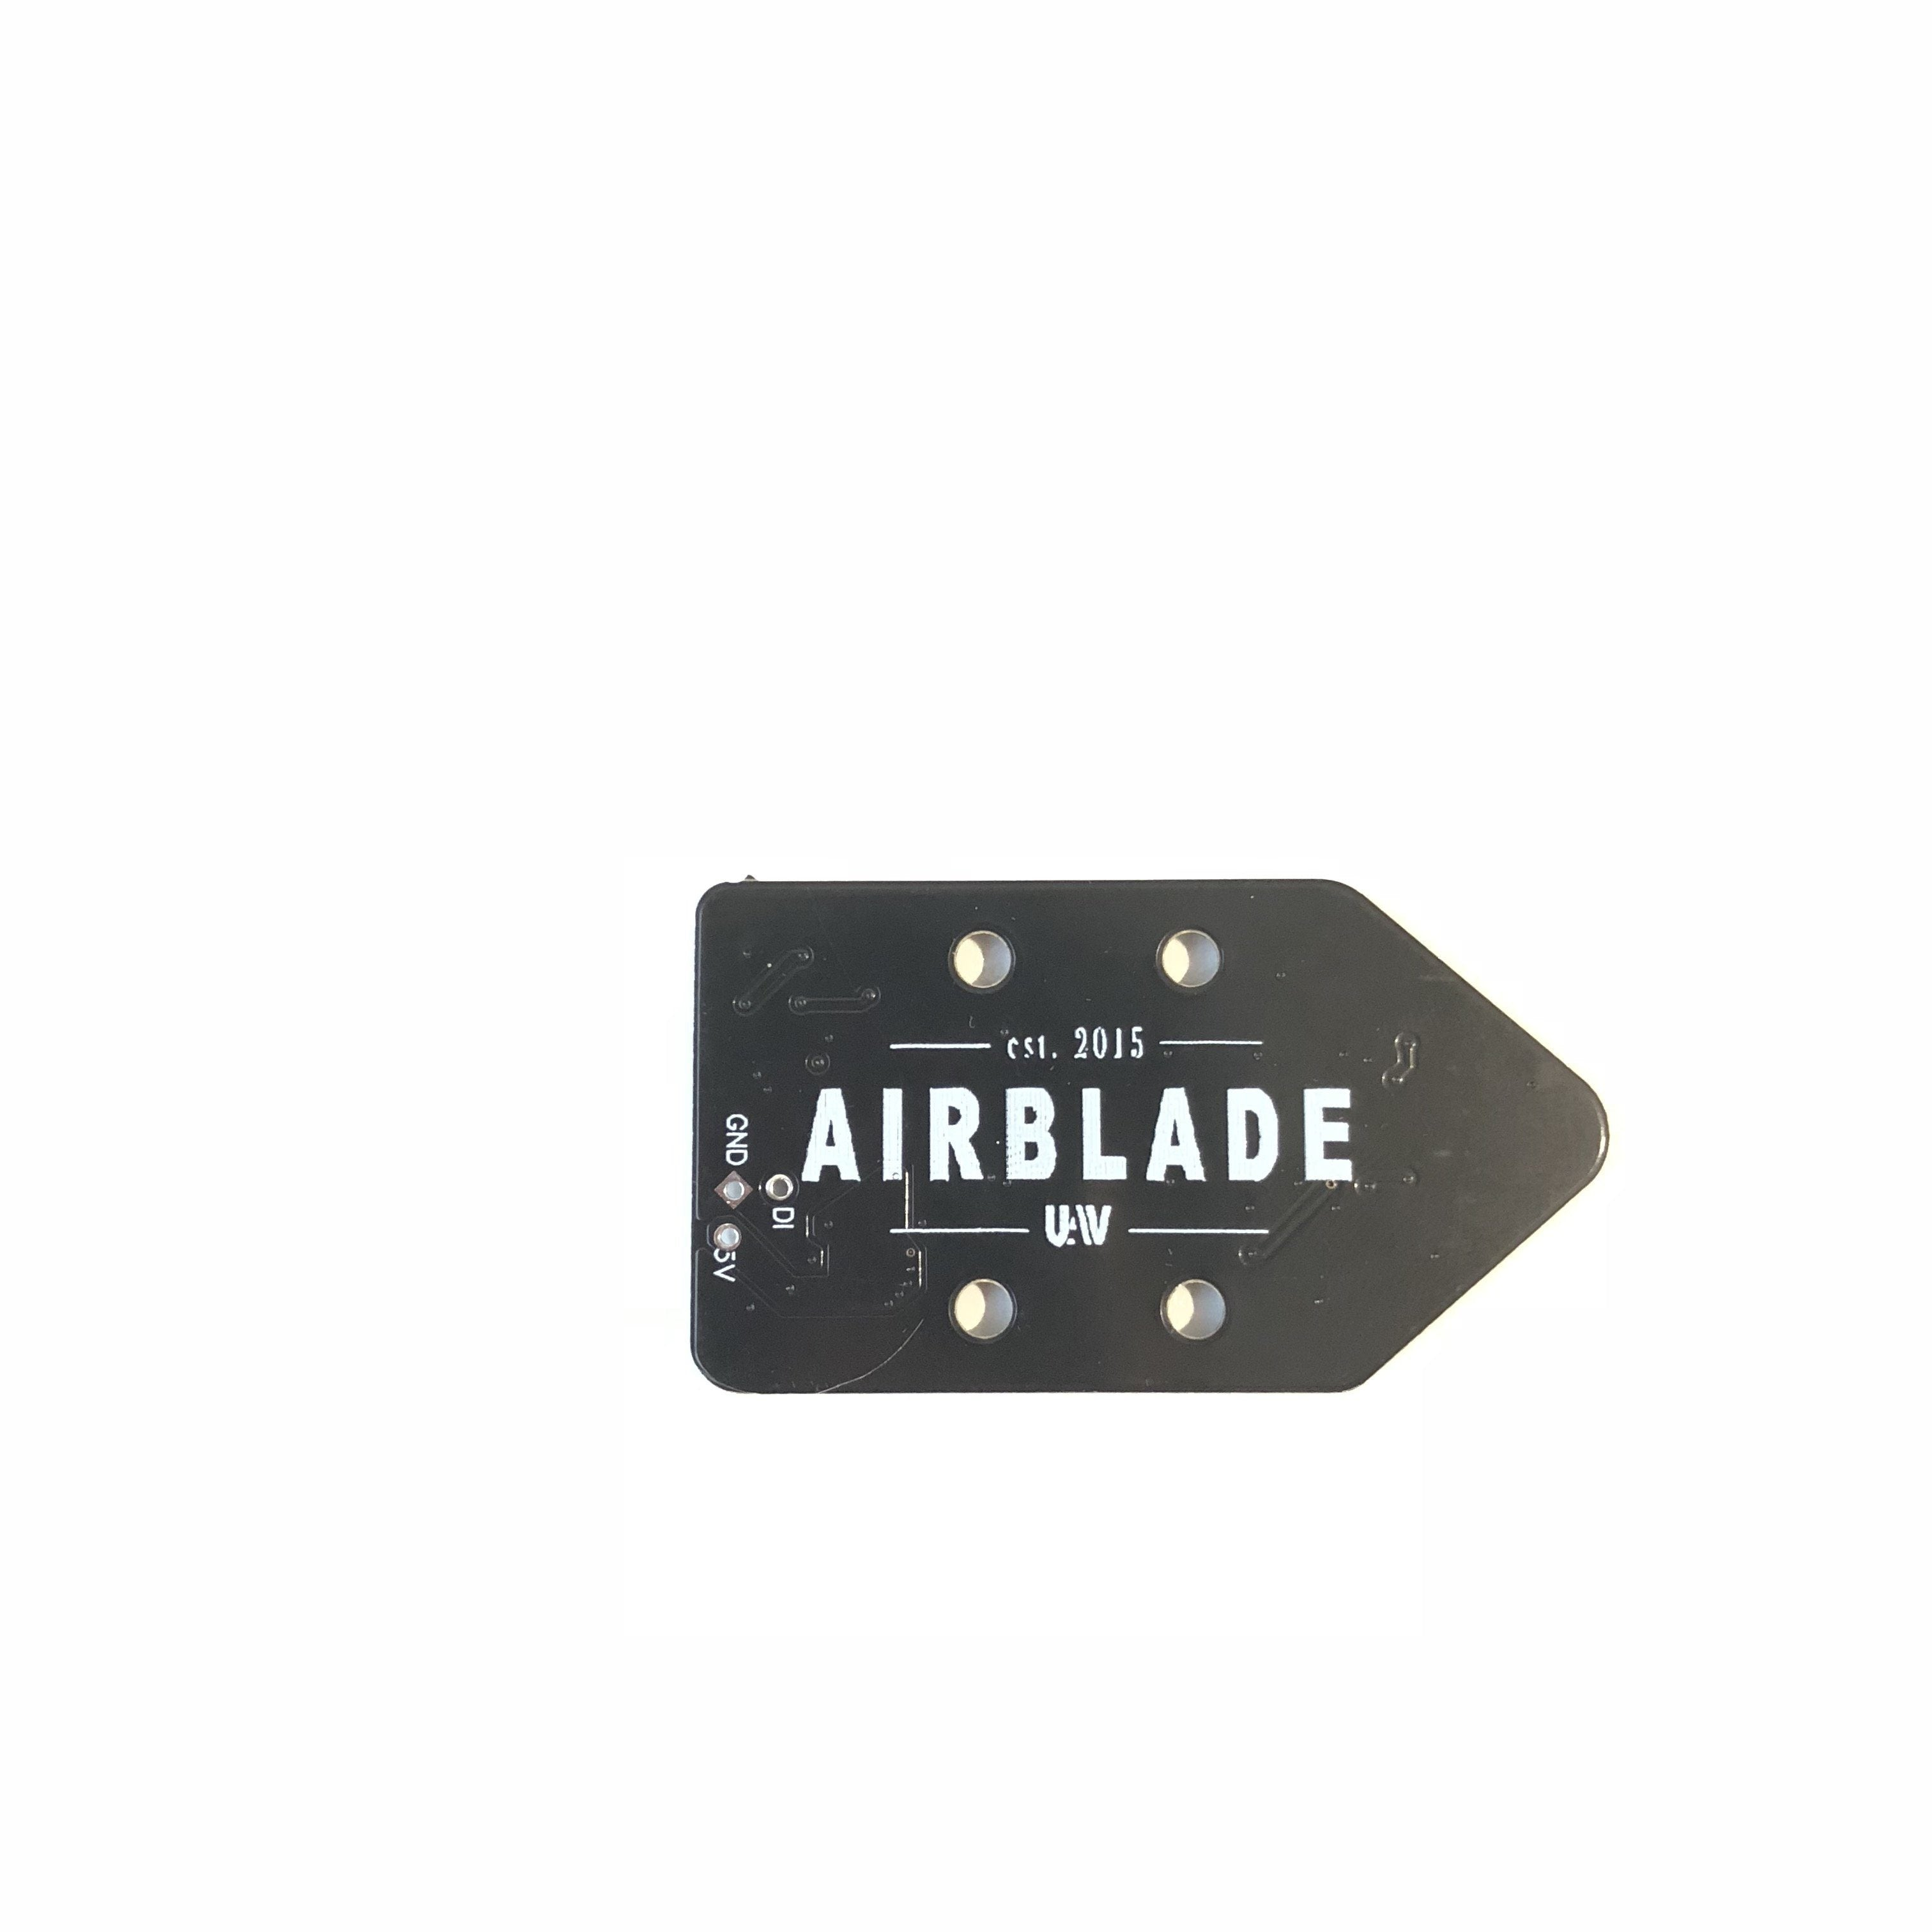 AirBlade 5V Addressable LED for AirBlade Intrepid V2 AirBlade UAV